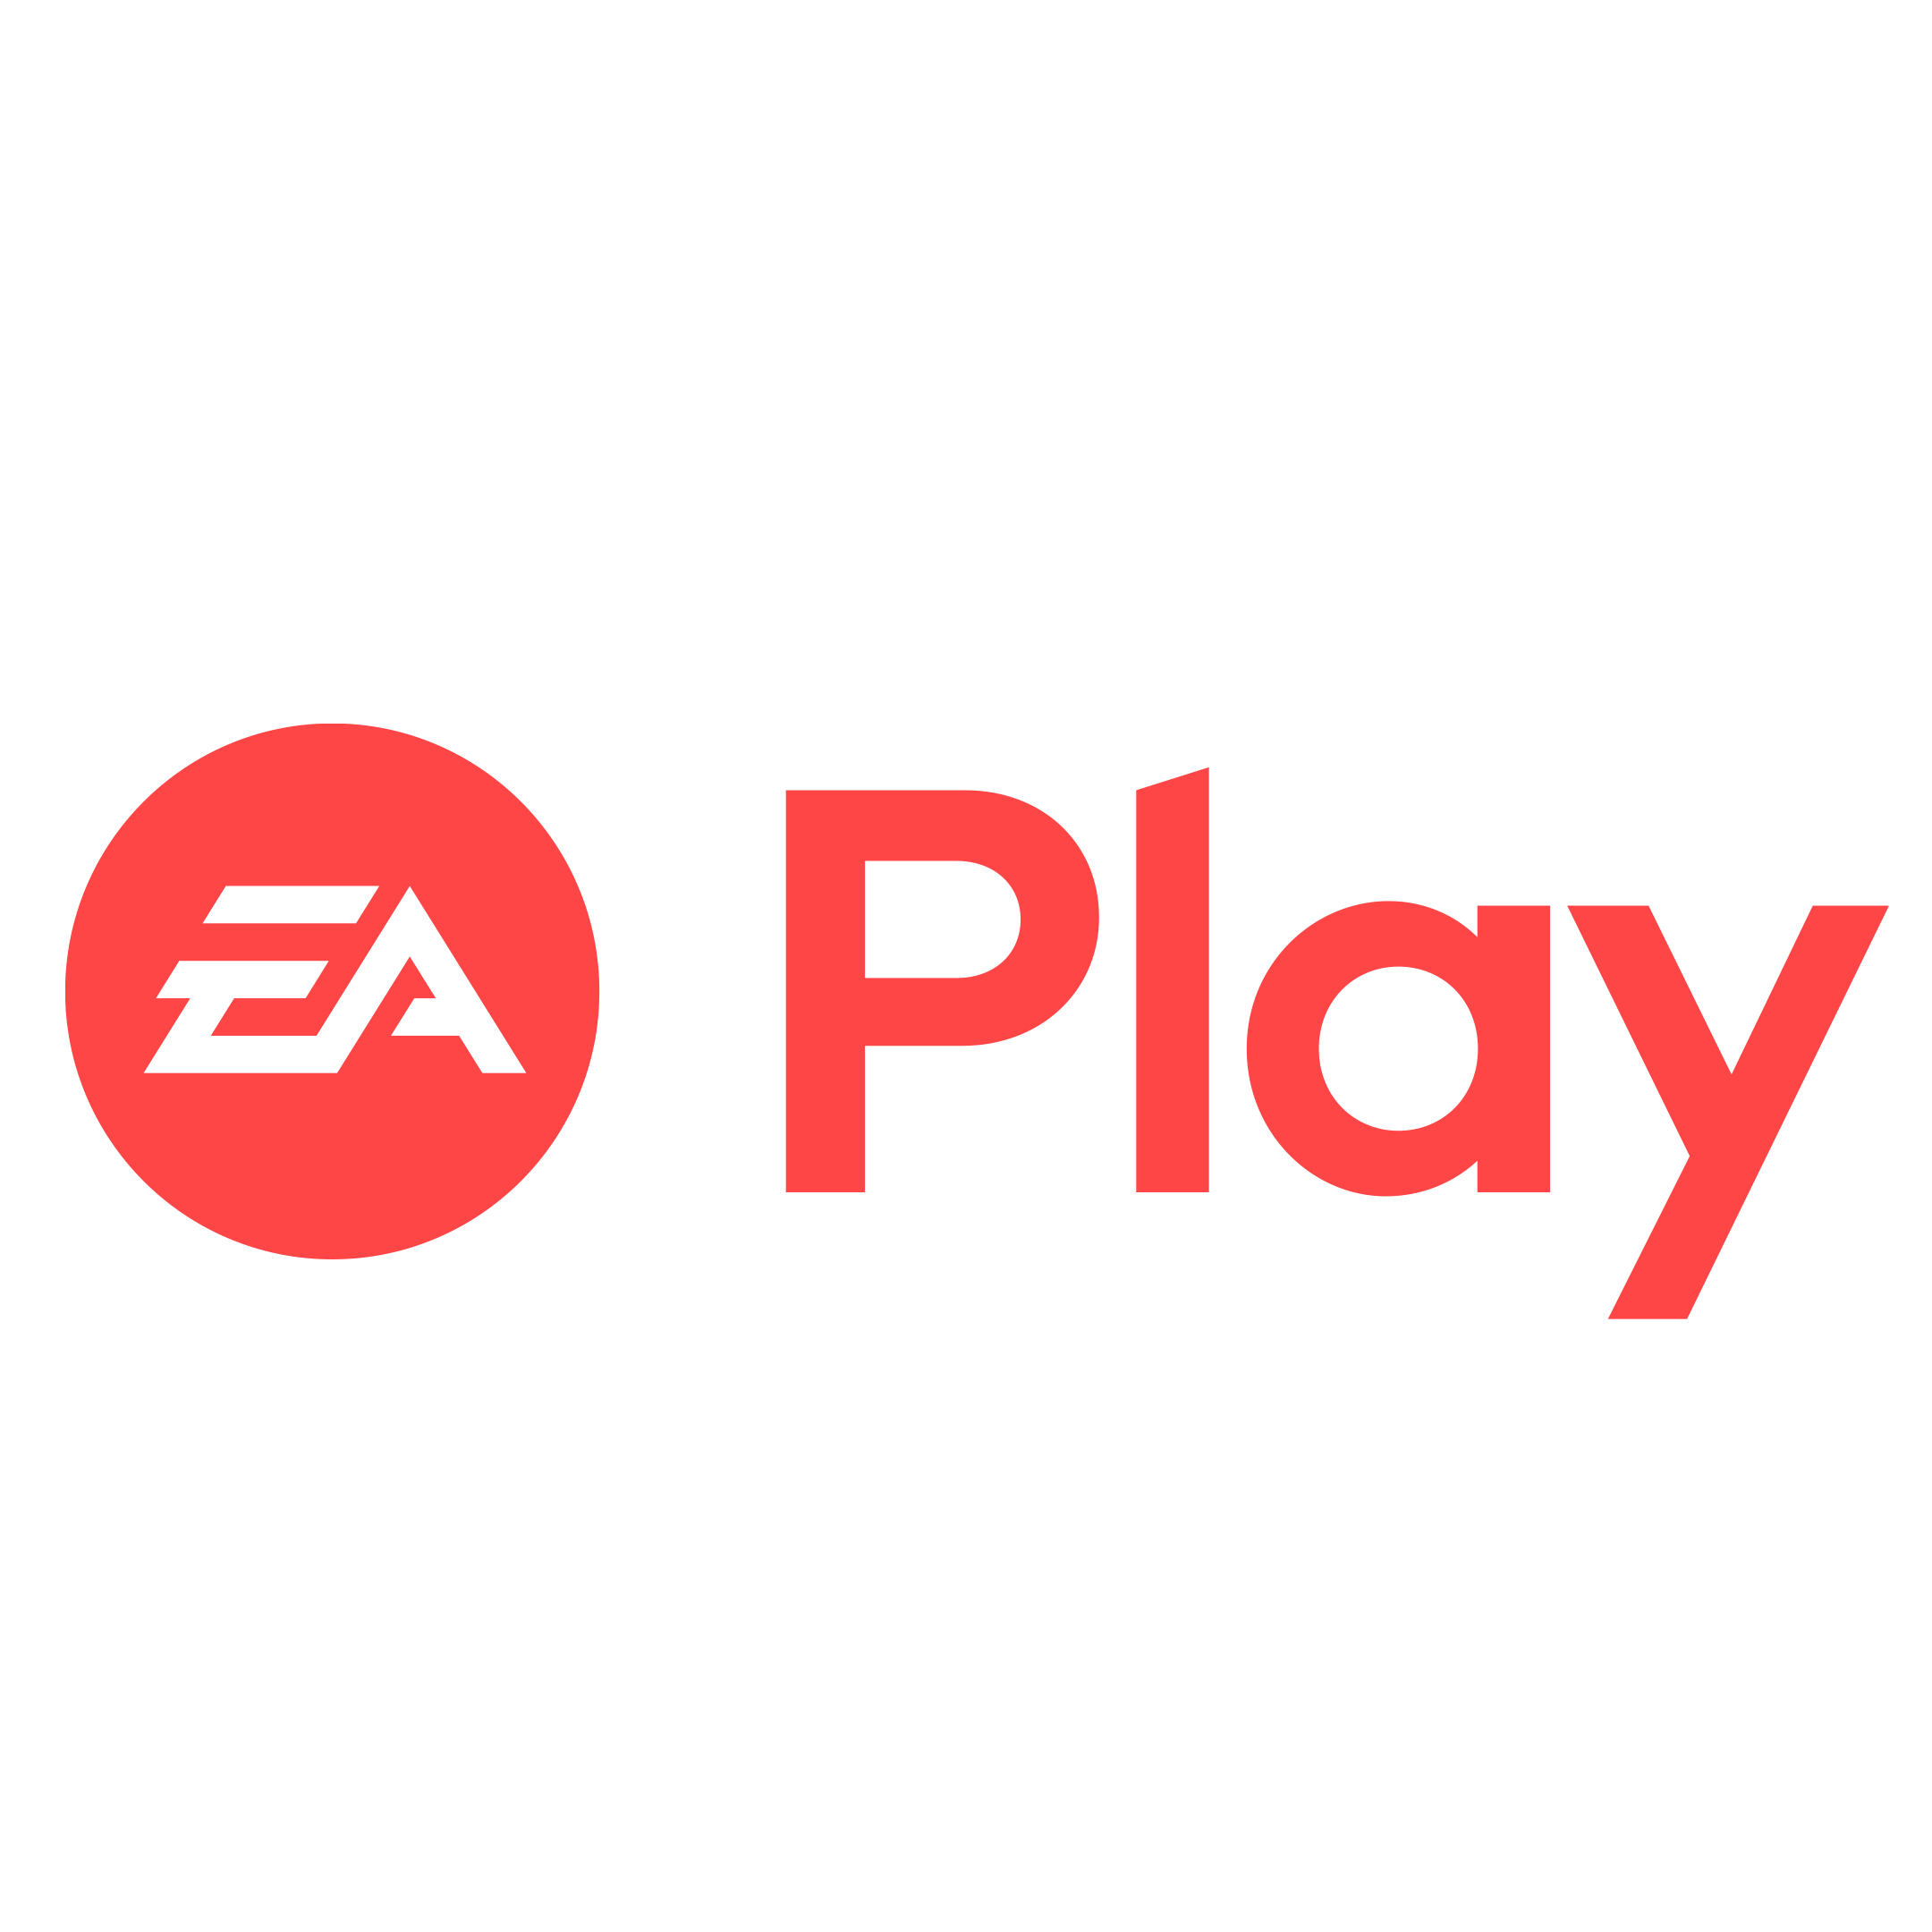 EA Play - Hero Logo